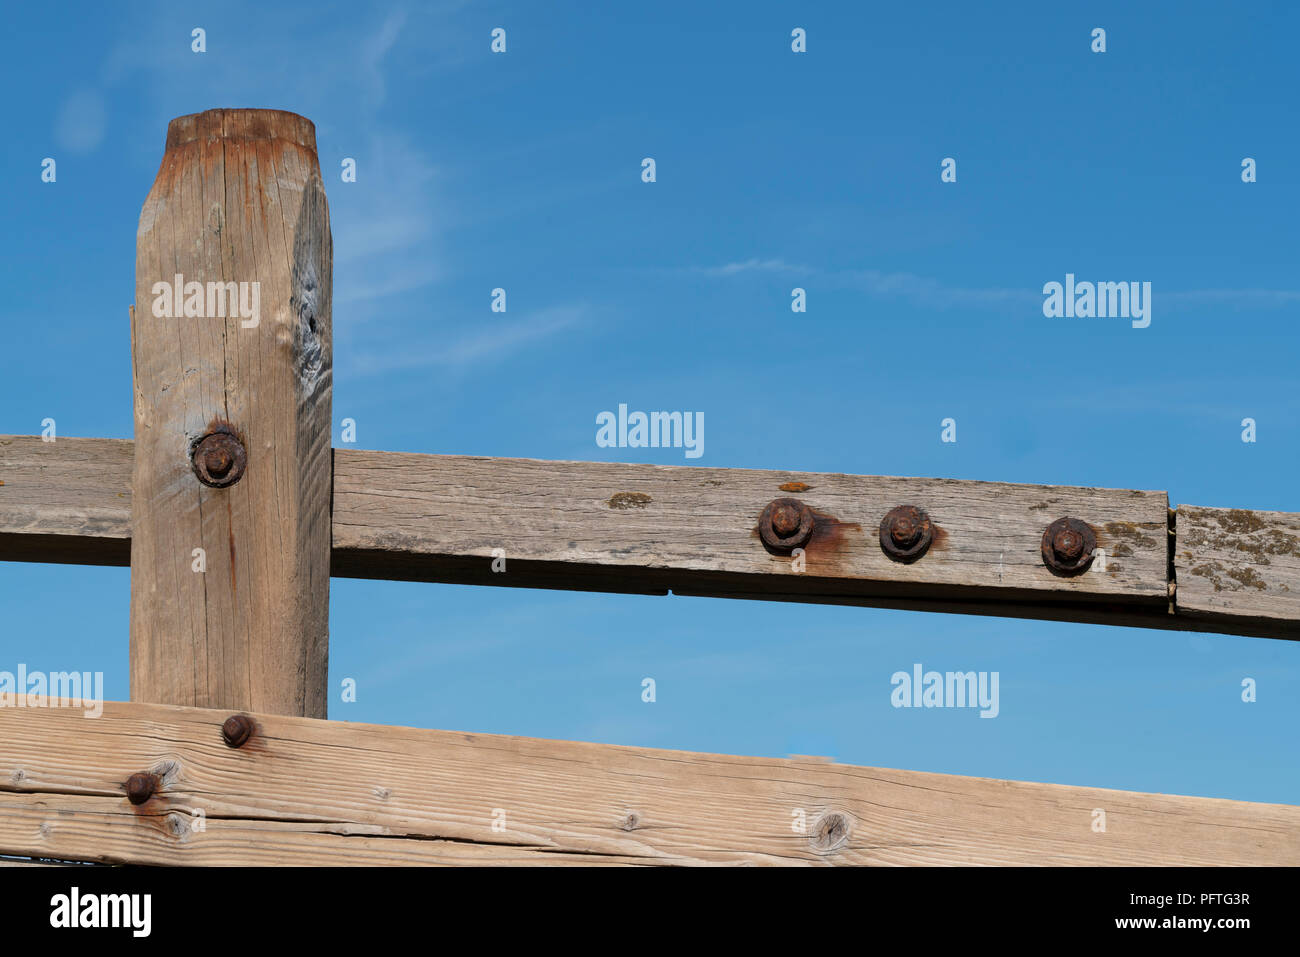 Wooden groyne or sea defence held together with rusting bolts, seen against a clear blue sky with hints of wispy cloud. - Stock Image